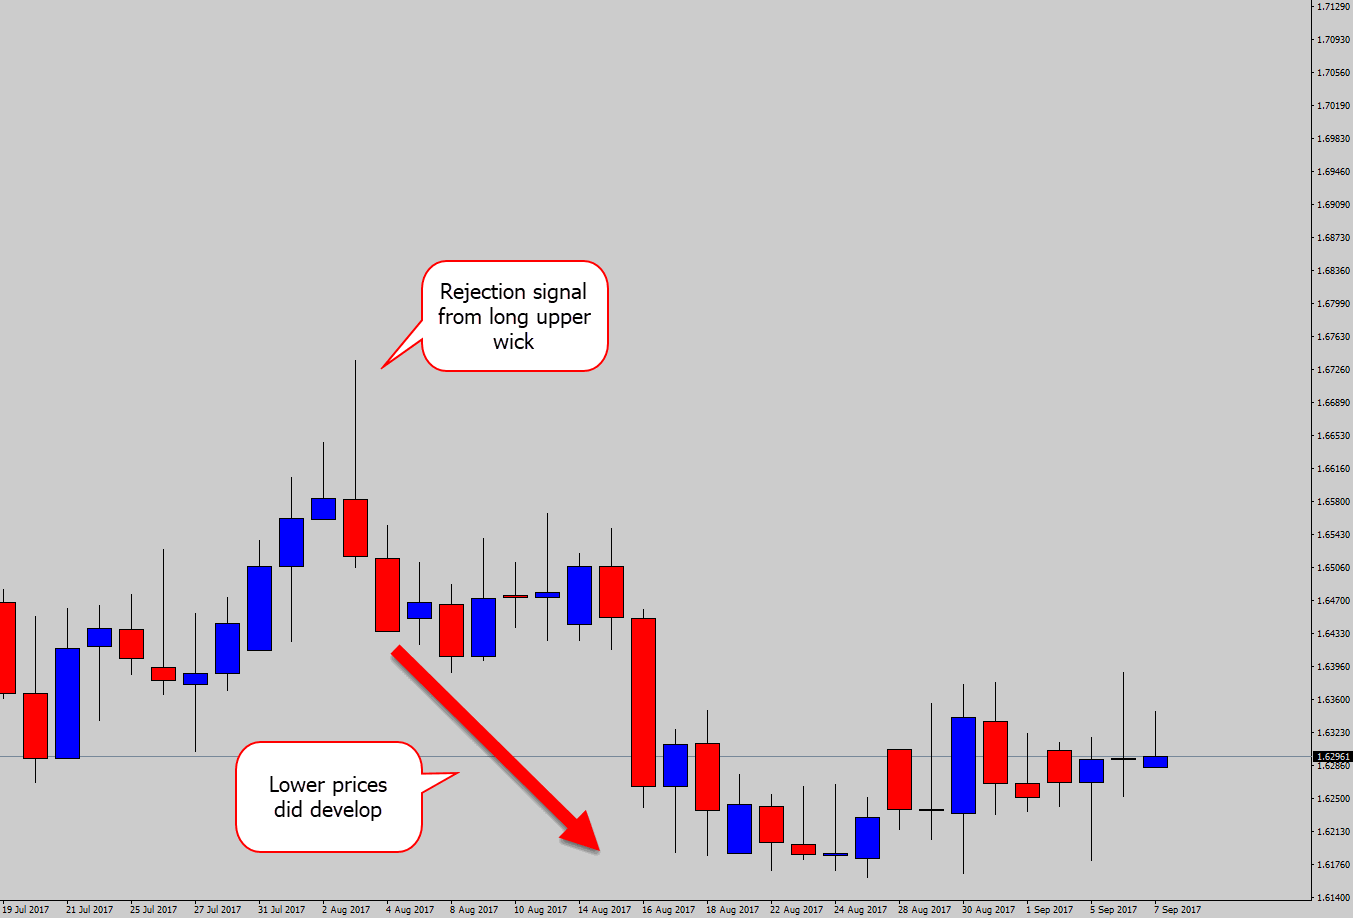 long tailed bearish rejection after